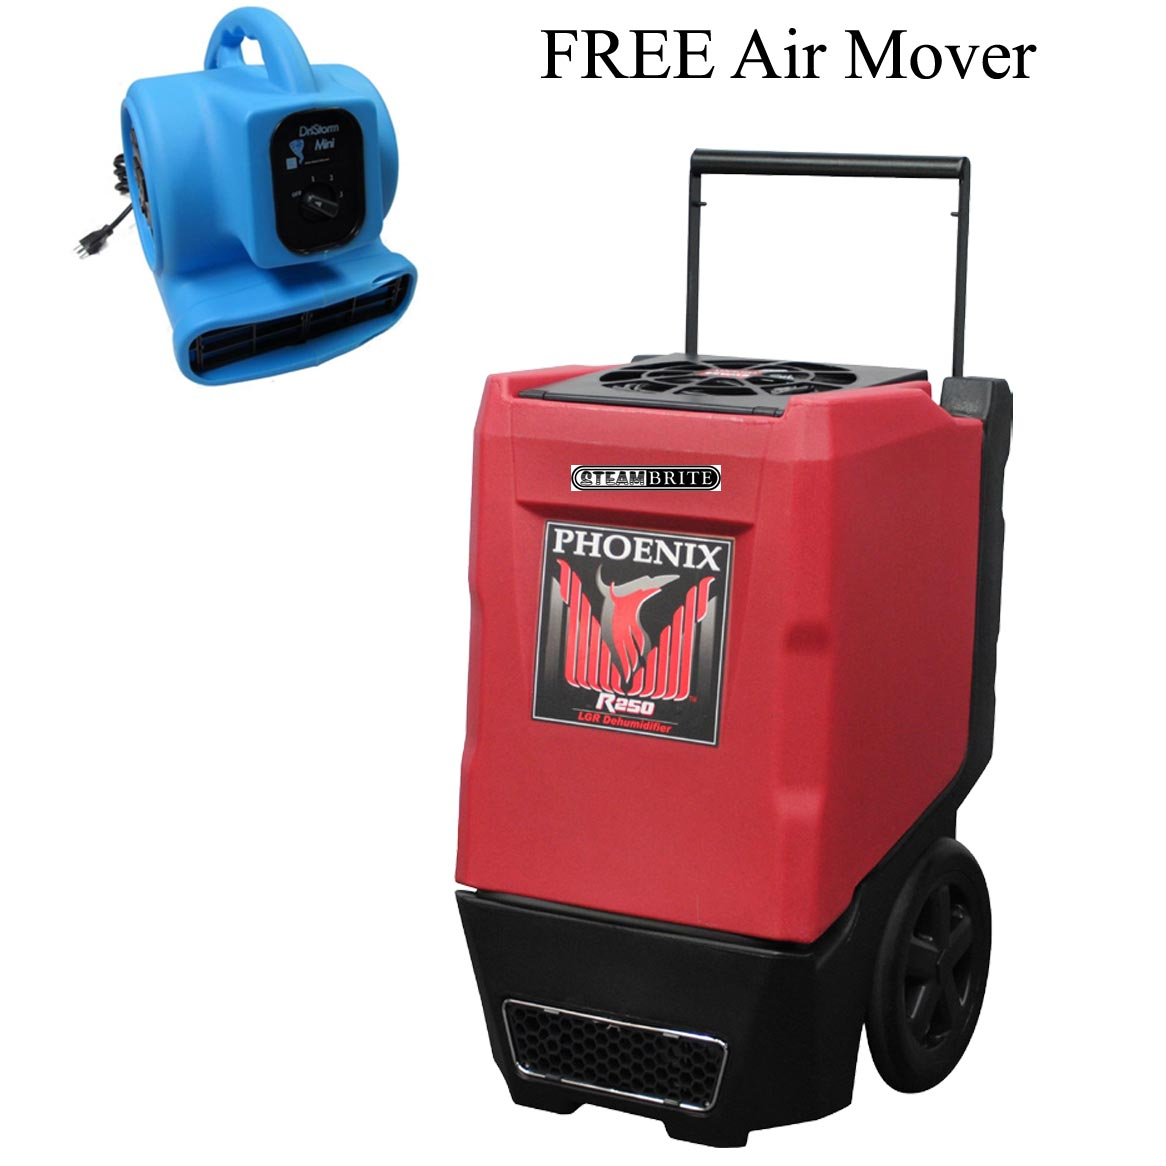 Phoenix R250 Industrial Restoration Dehumidifier- Red- 4034460 Air Mover Included